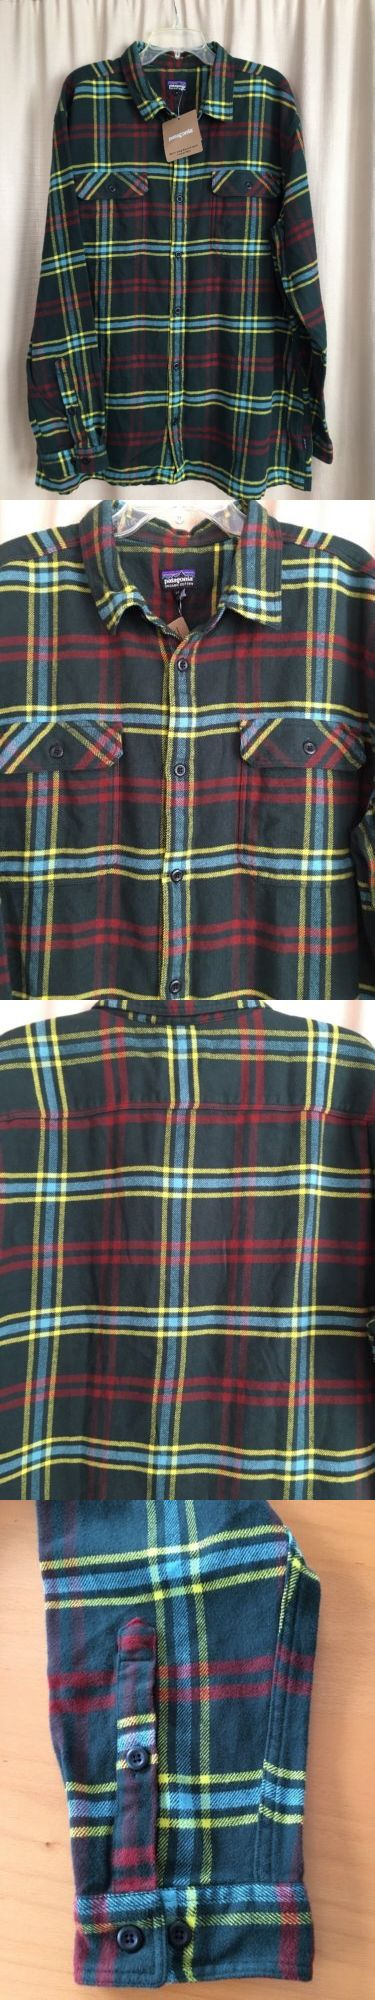 Casual Shirts 57990: New Patagonia Shirt Xxl 2Xl Men S Fjord Flannel Long Sleeve Green Plaid -> BUY IT NOW ONLY: $31.77 on eBay!